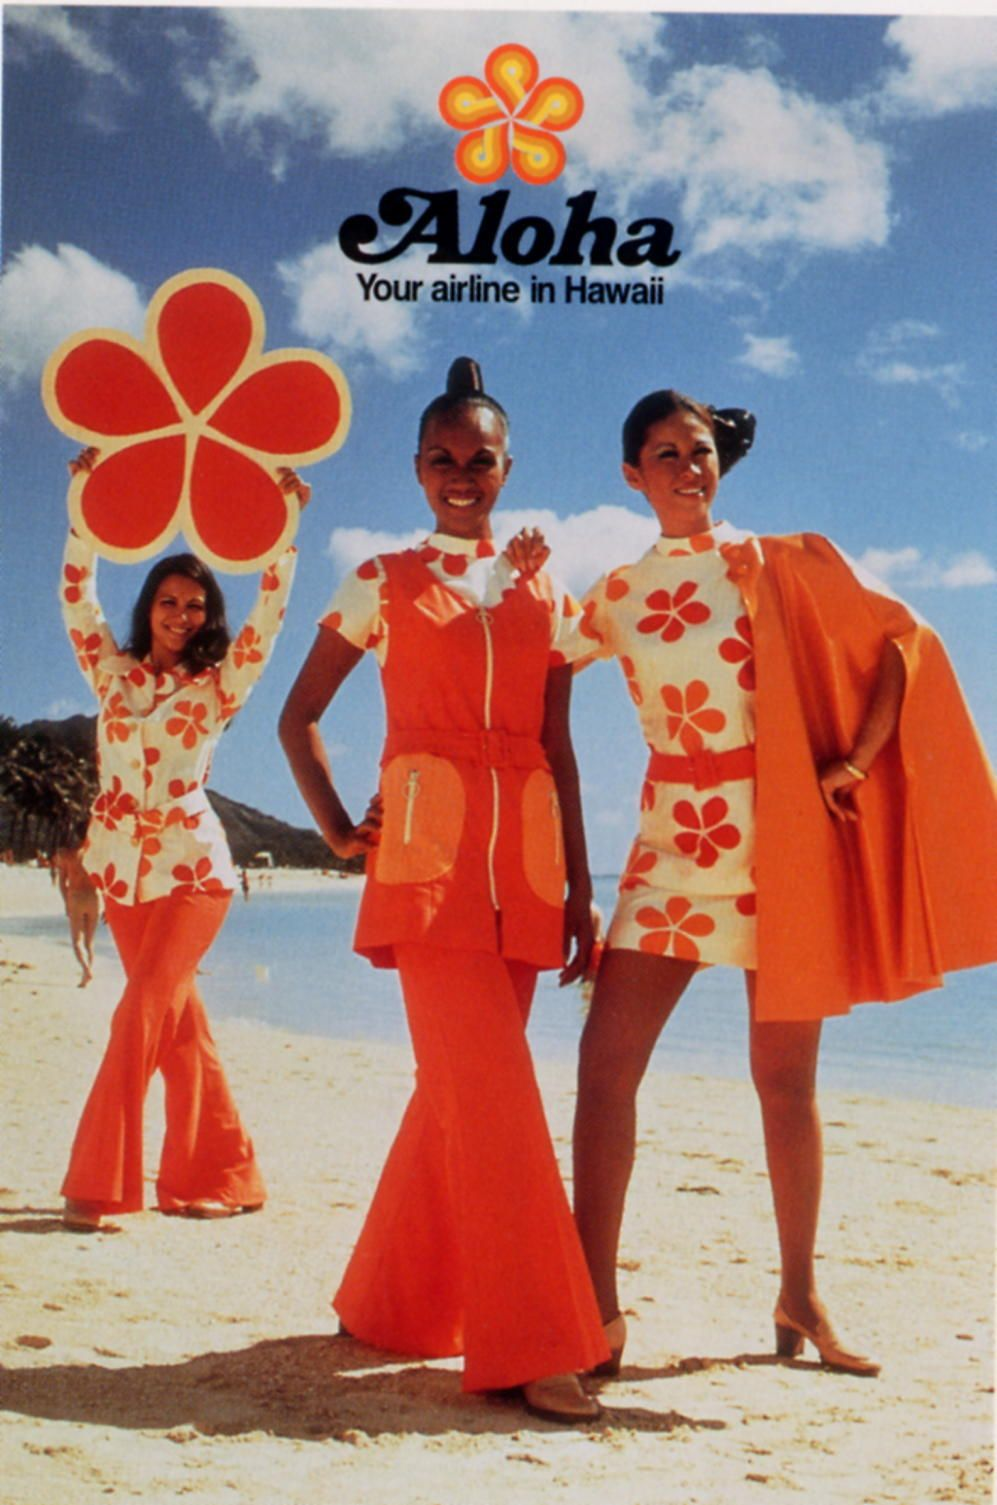 Aloha Airlines 70s Color Photo Print Ad Models Red Orange